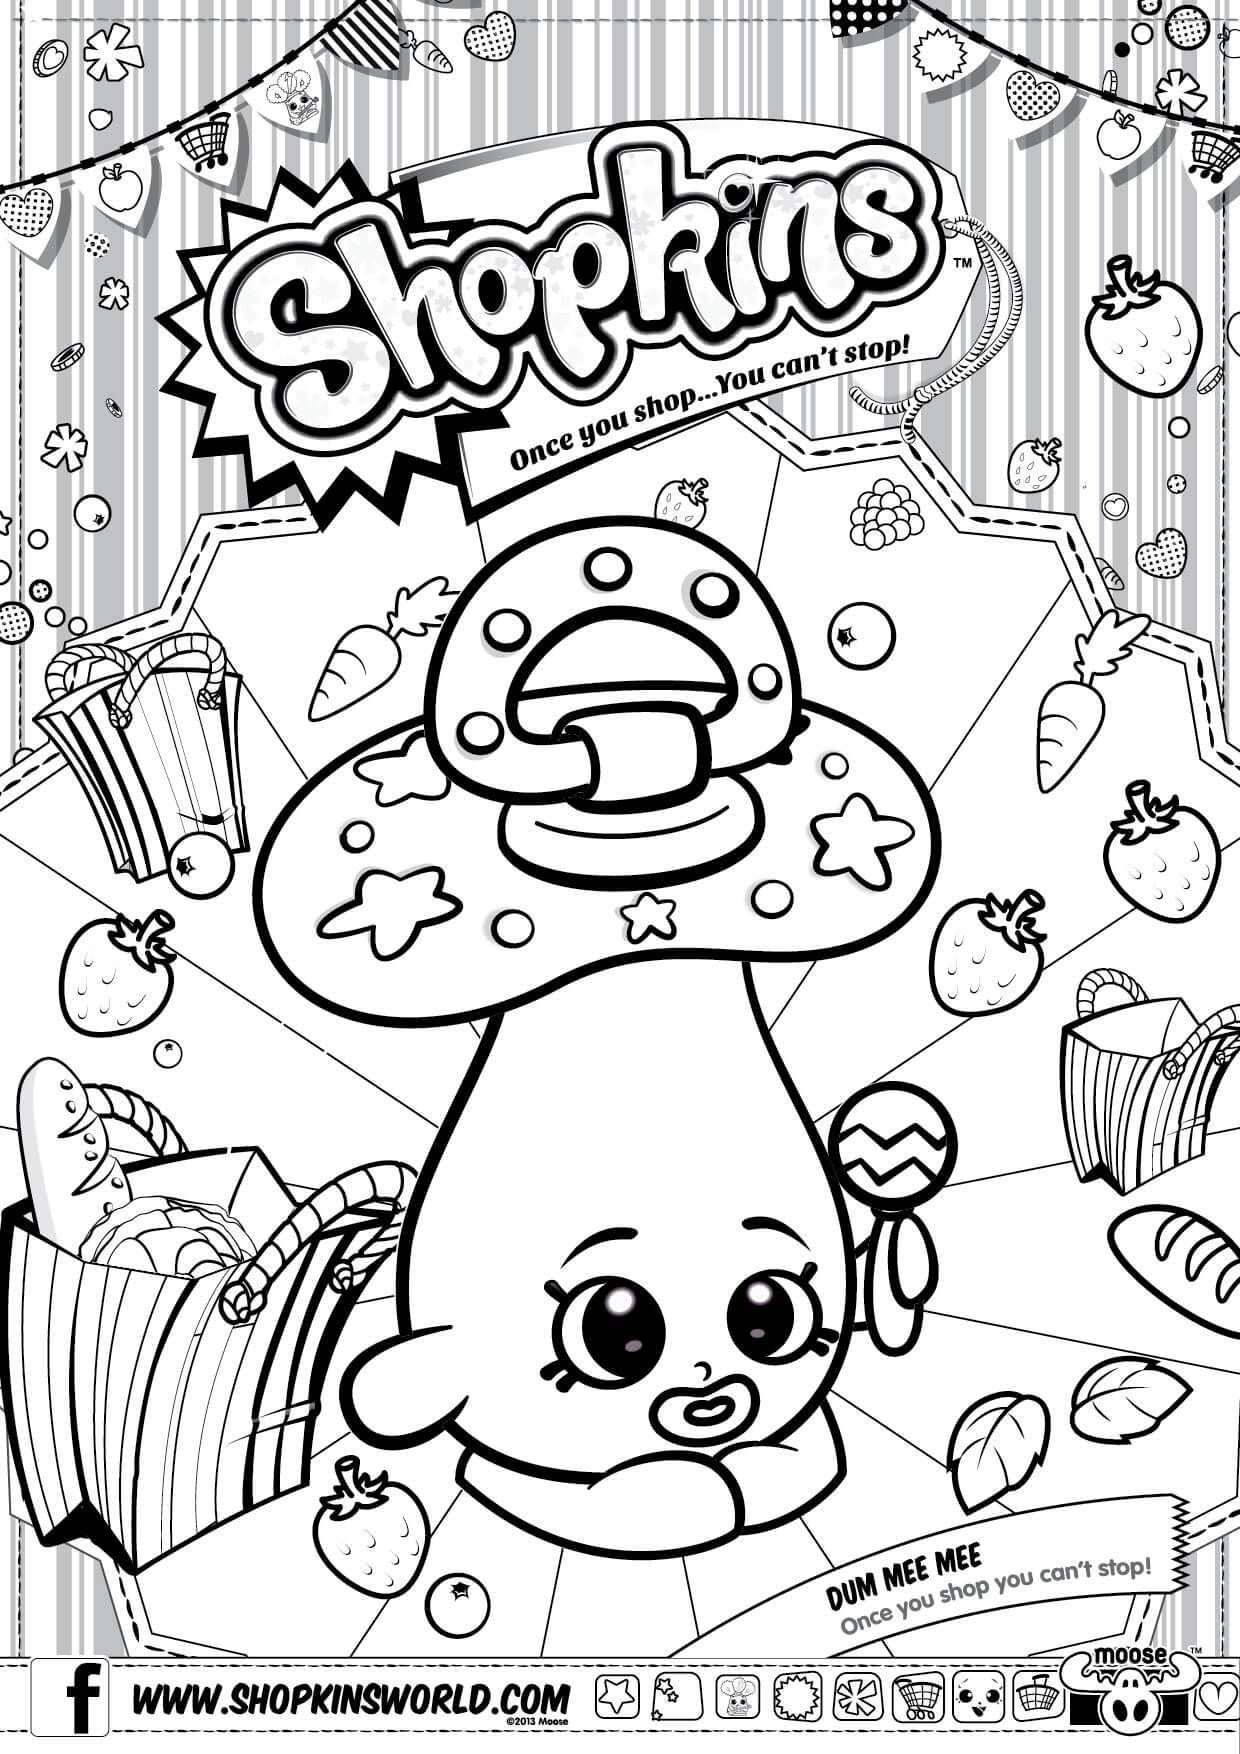 Shopkins coloring pages polly polish - Shopkins Coloring Pages Season 2 Dum Mee Mee